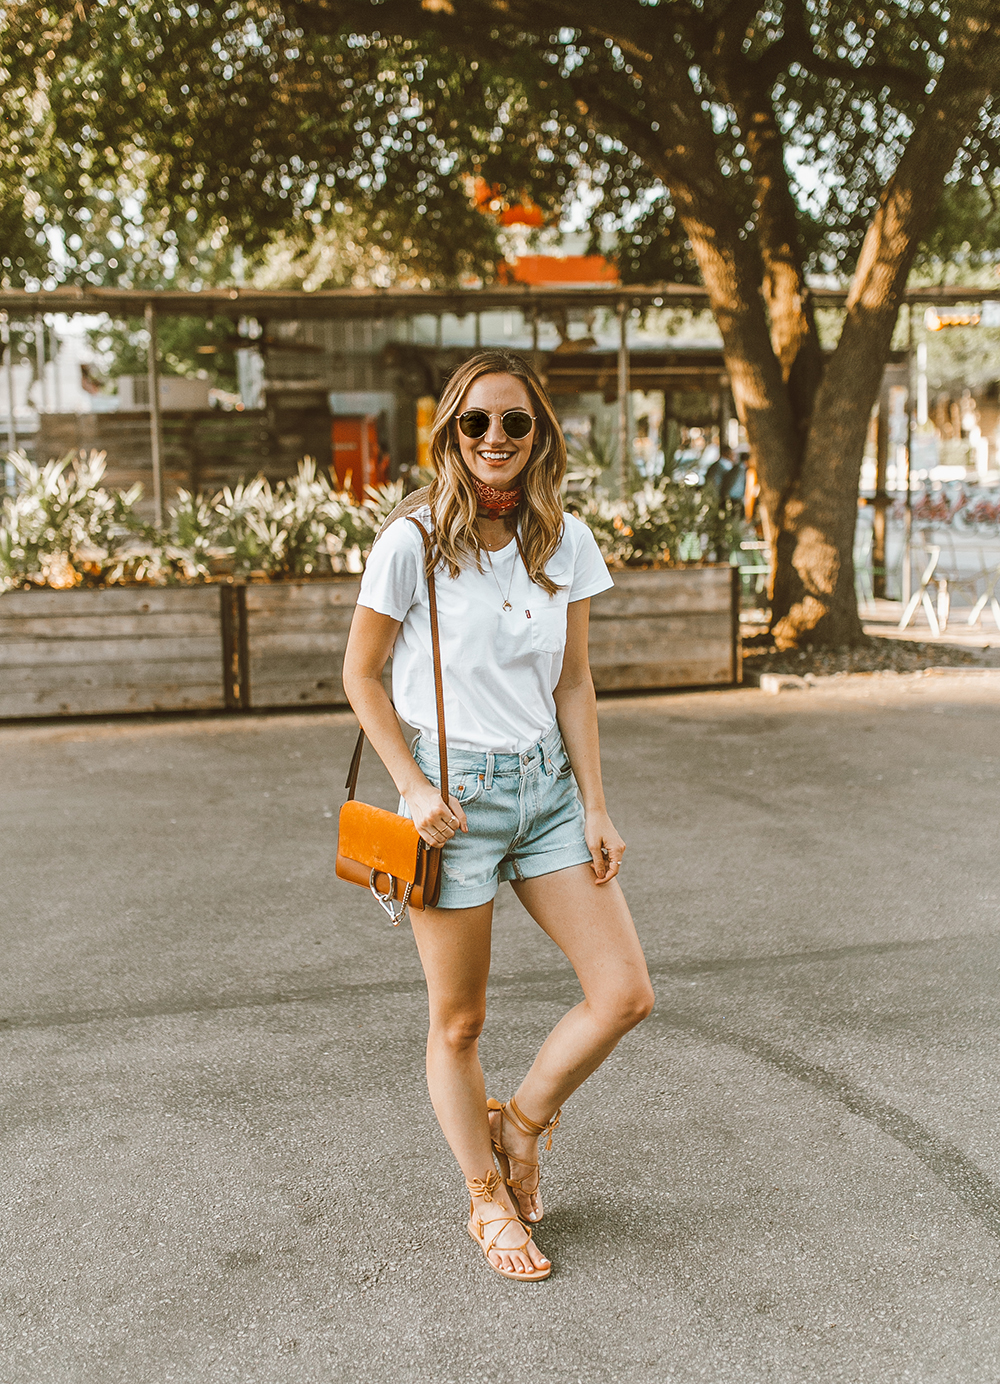 livvyland-blog-olivia-watson-austin-texas-fashion-style-blogger-what-to-wear-levis-501-denim-shorts-festival-outfit-idea-5